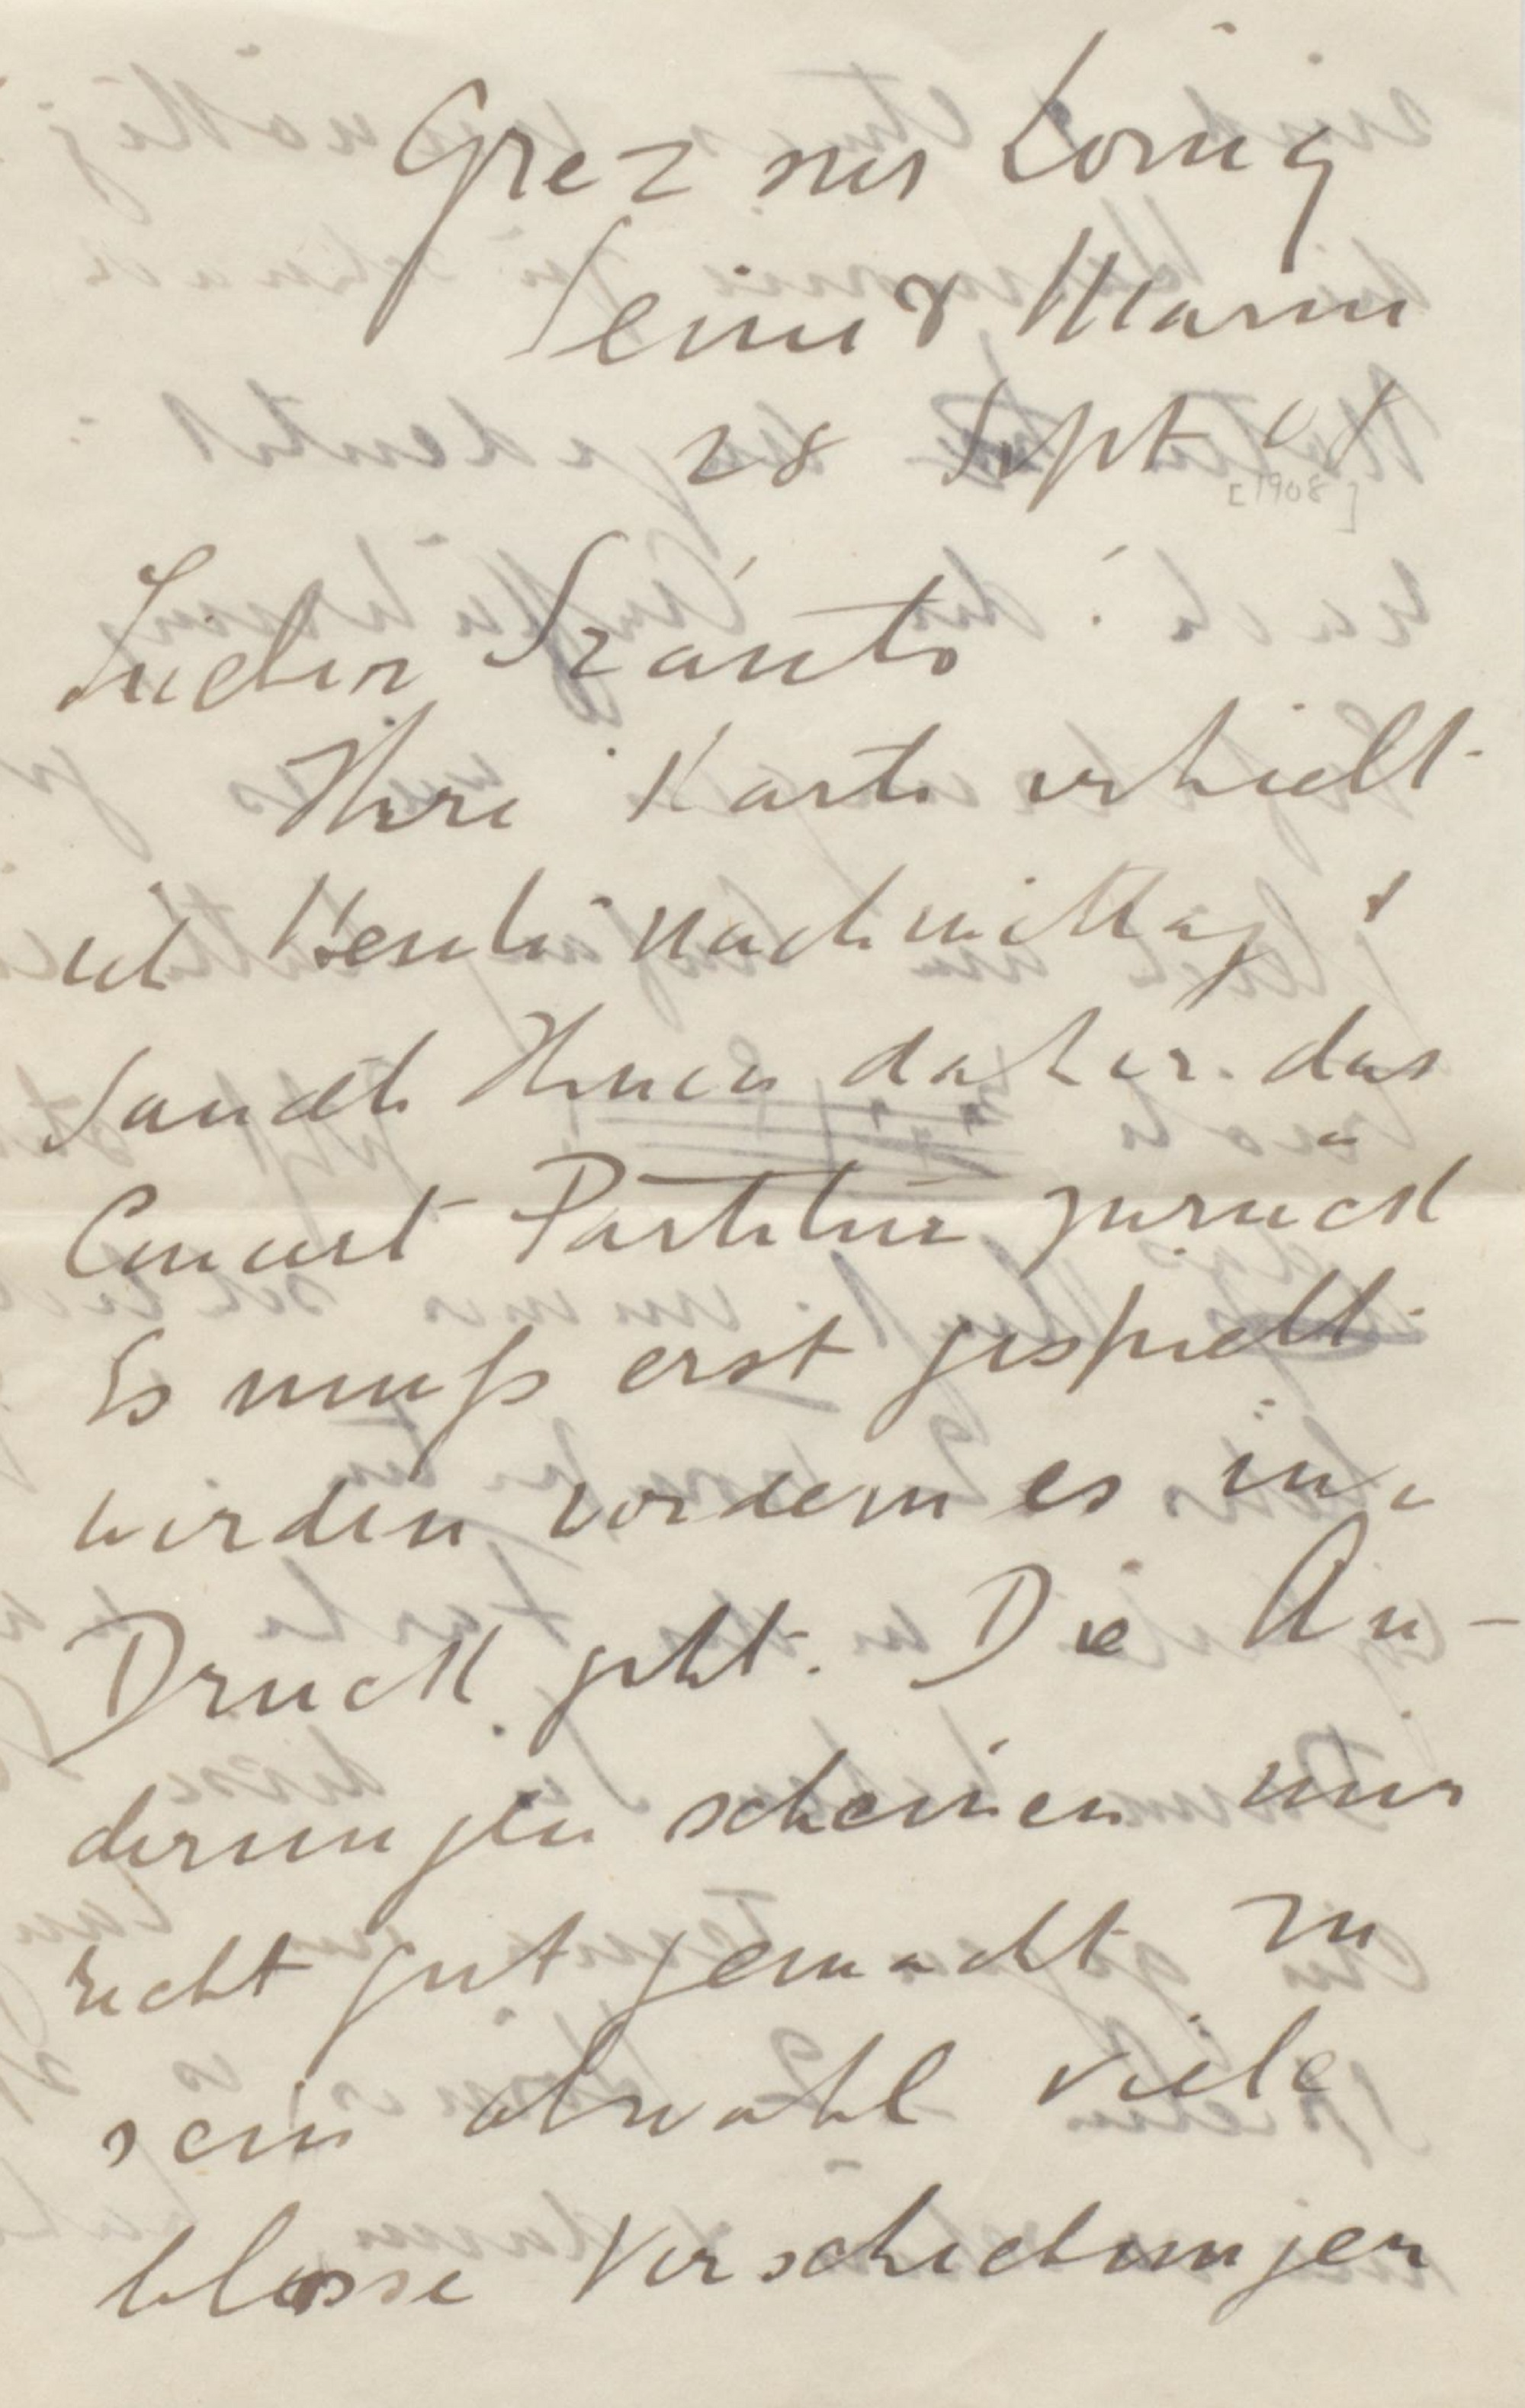 Letter from Frederick Delius to Thomas Szántó, 18 September 1908